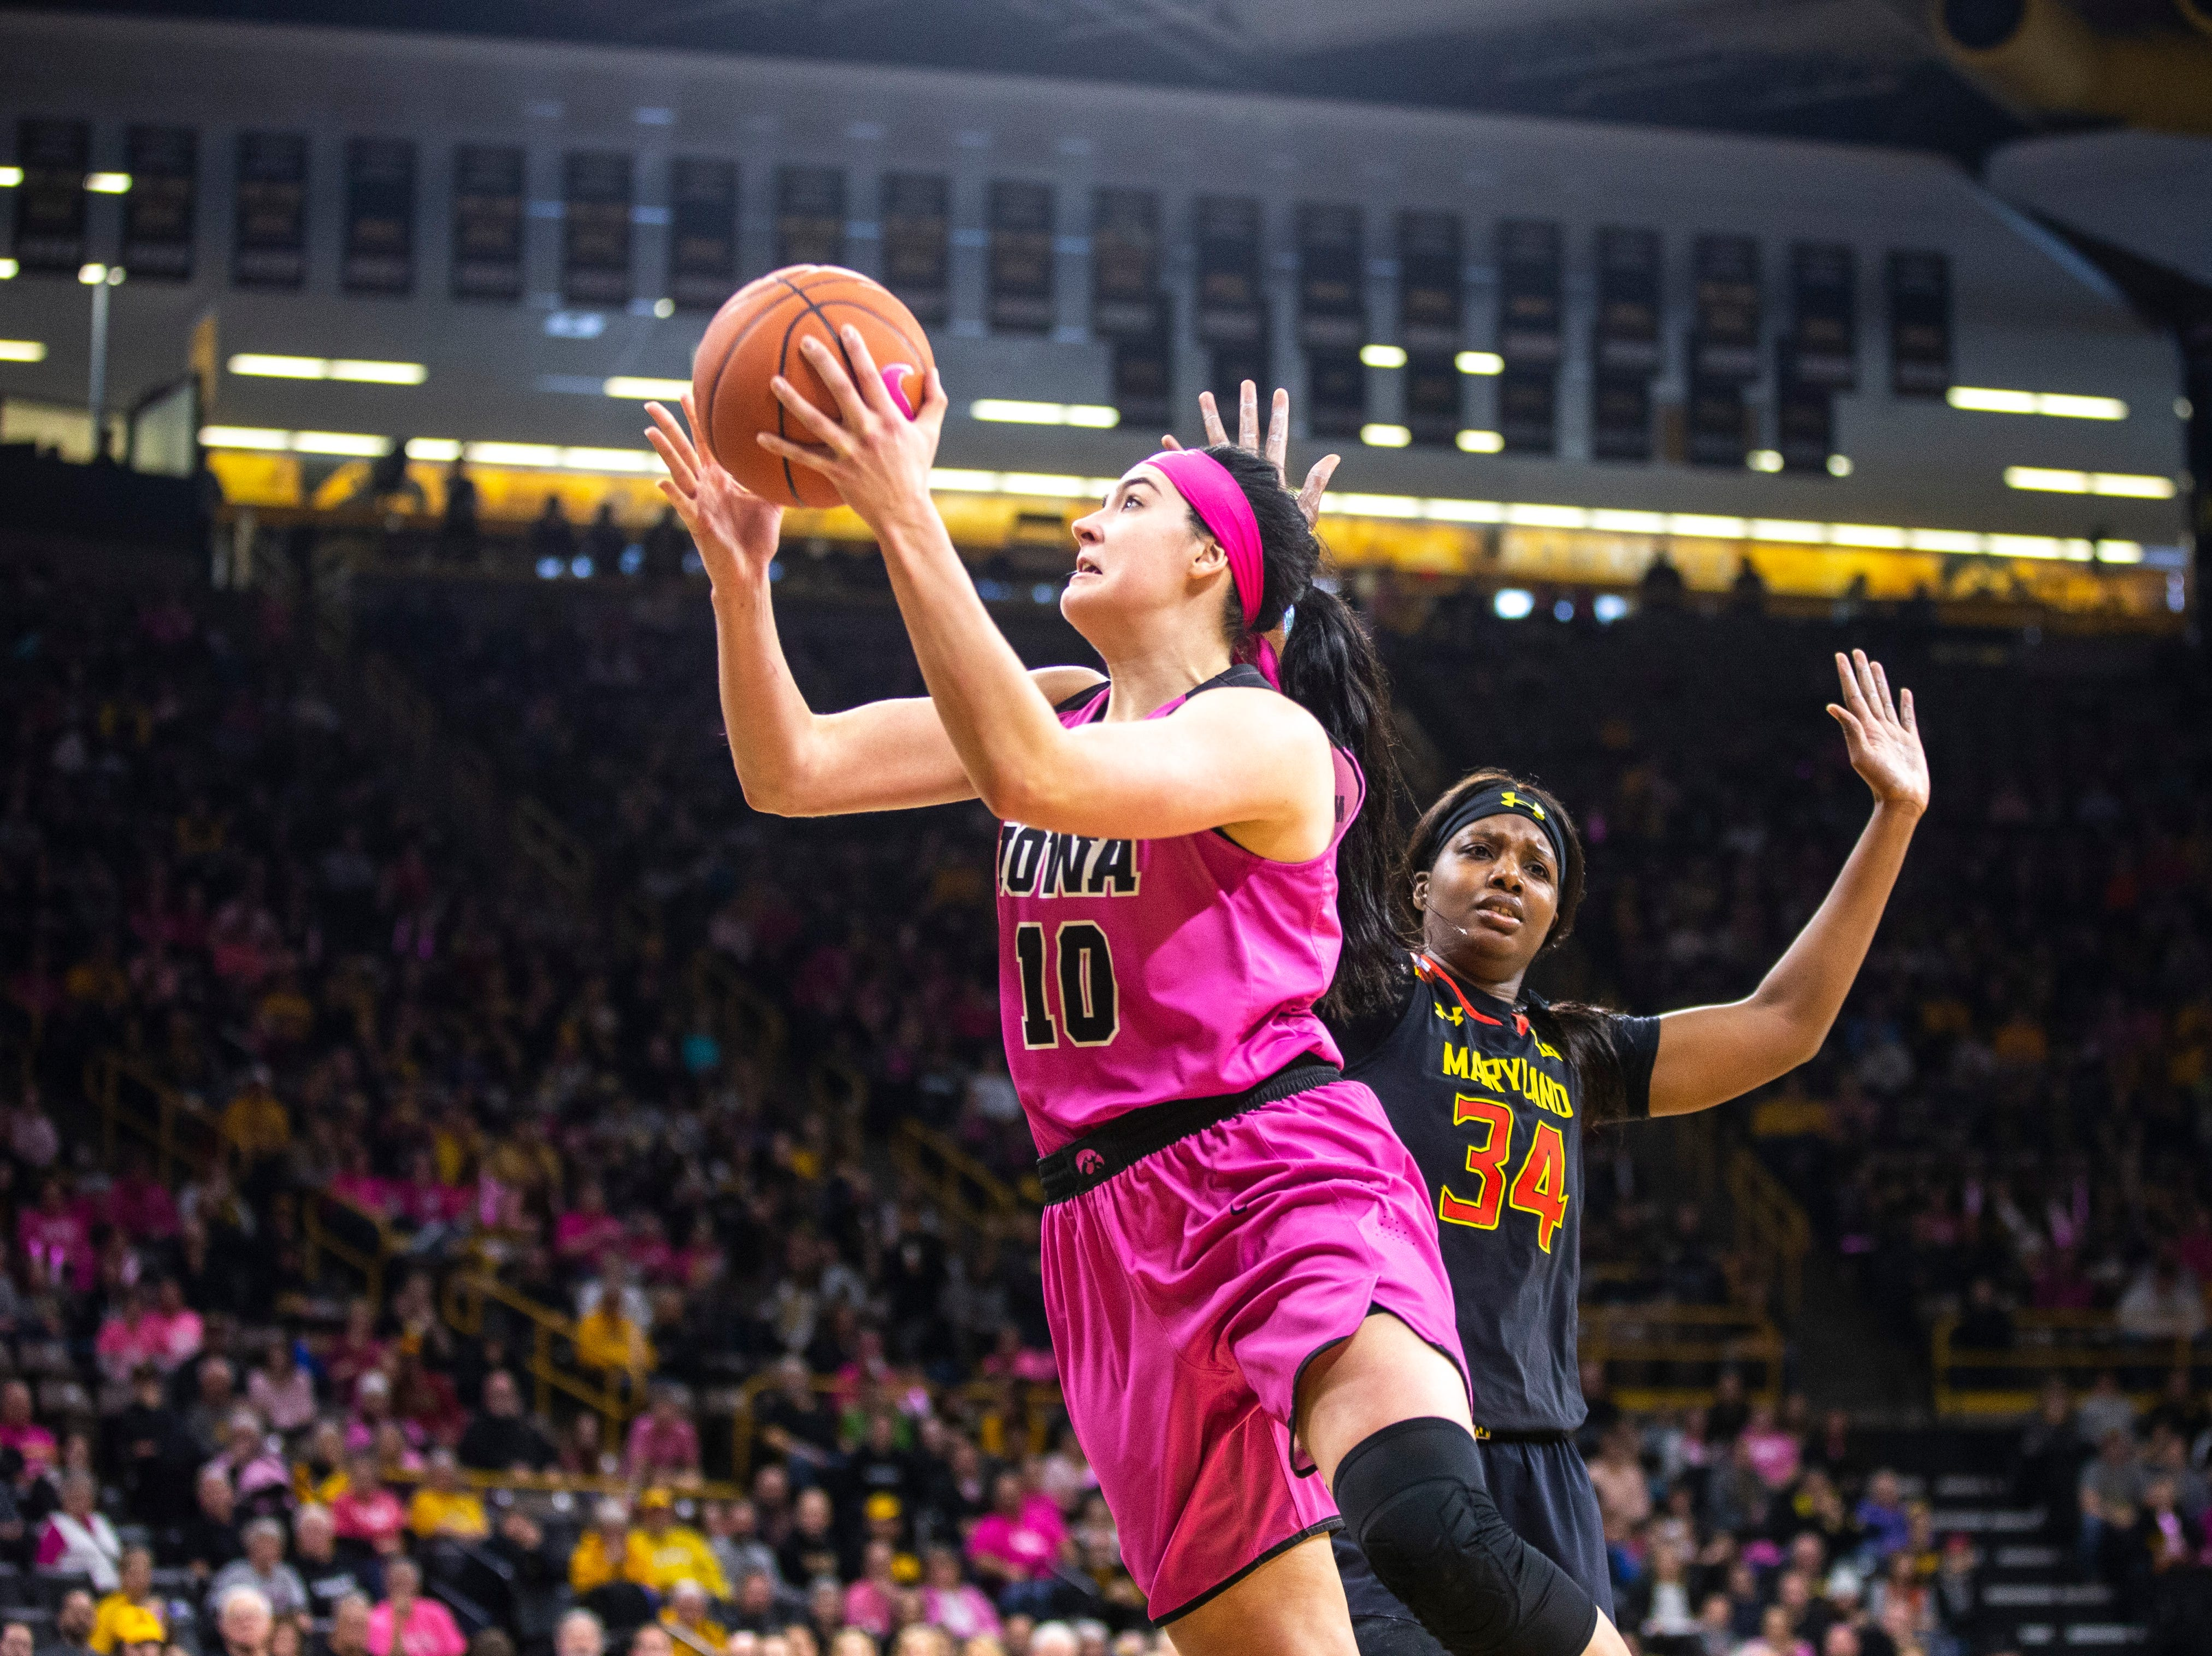 Iowa center Megan Gustafson (10) drives to the basket while Maryland center Olivia Owens (34) defends during a NCAA Big Ten Conference women's basketball game on Sunday, Feb. 17, 2019 at Carver-Hawkeye Arena in Iowa City, Iowa.